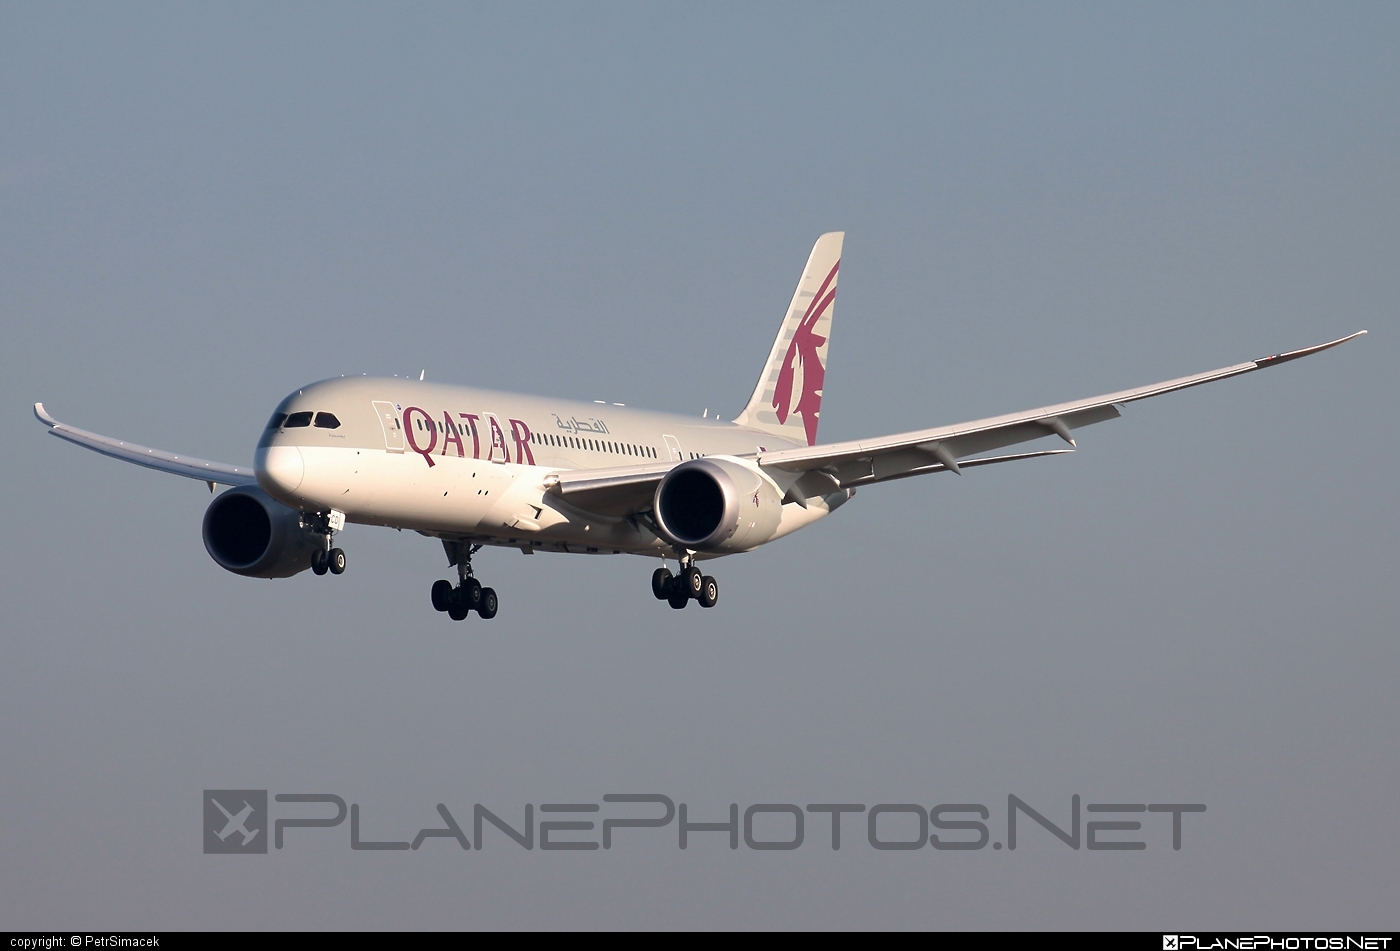 Boeing 787-8 Dreamliner - A7-BCD operated by Qatar Airways #b787 #boeing #boeing787 #dreamliner #qatarairways